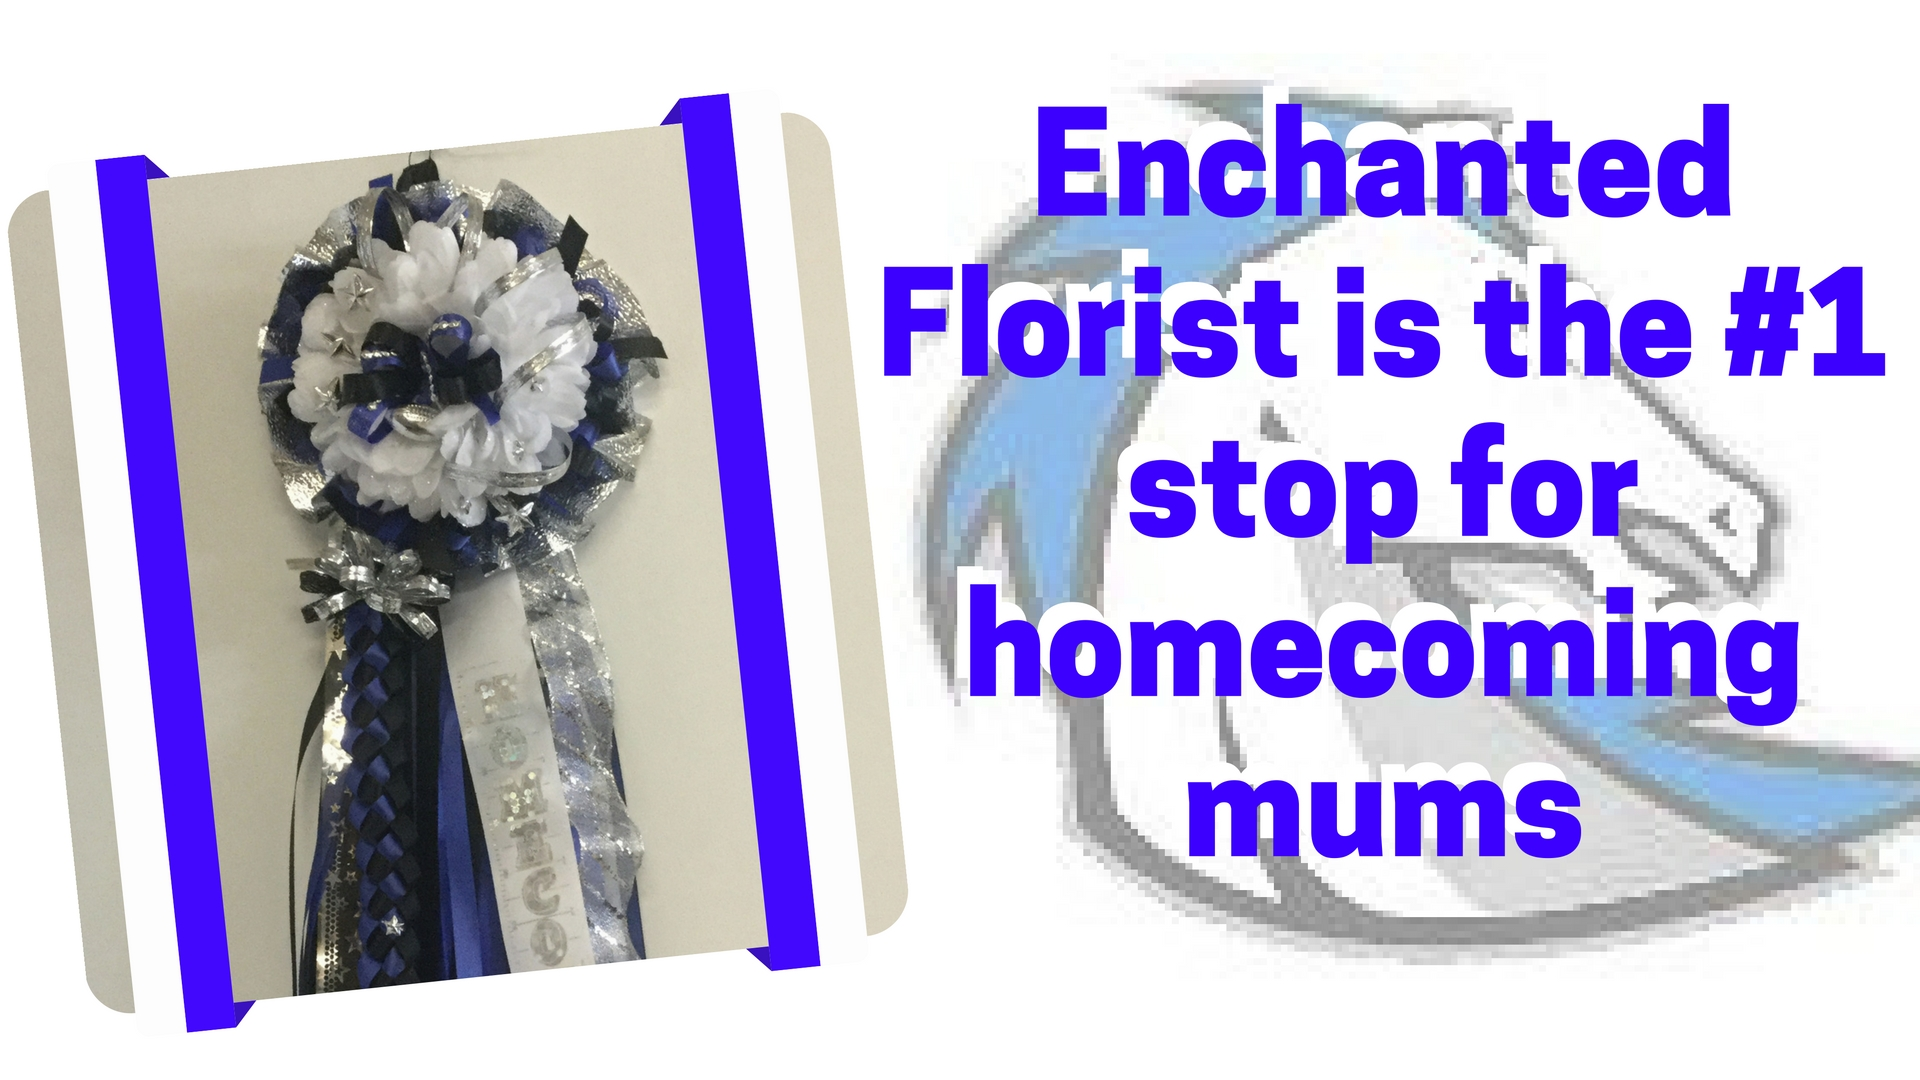 homecoming mums for clear springs high school